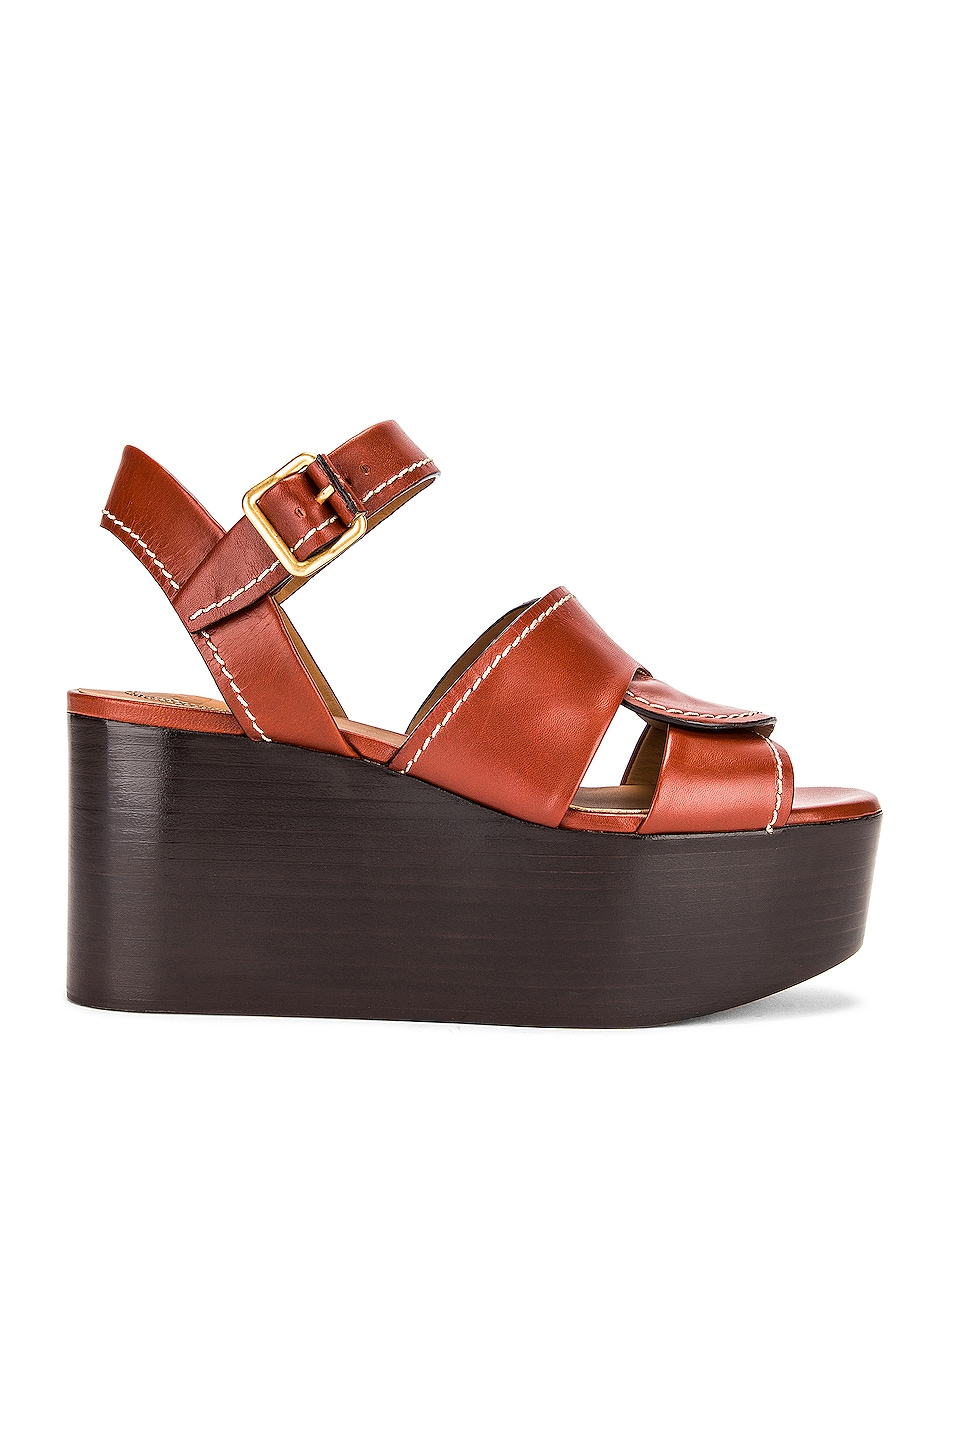 Image 1 of Chloe Candice Platform Sandals in Sepia Brown